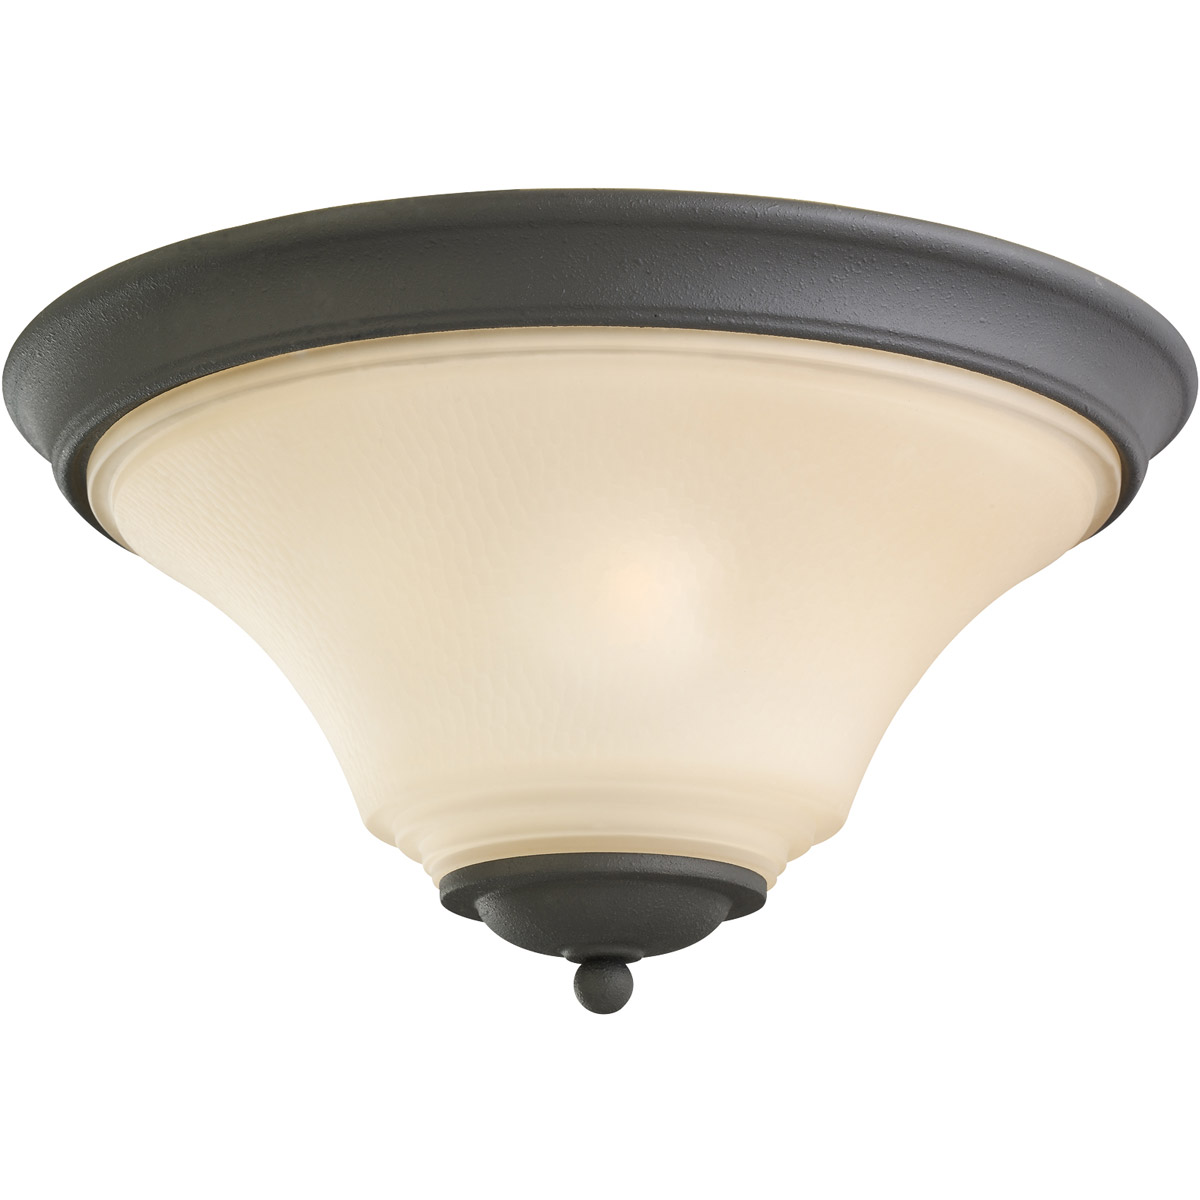 Sea Gull Lighting Somerton 2 Light Flush Mount in Blacksmith 75375-839